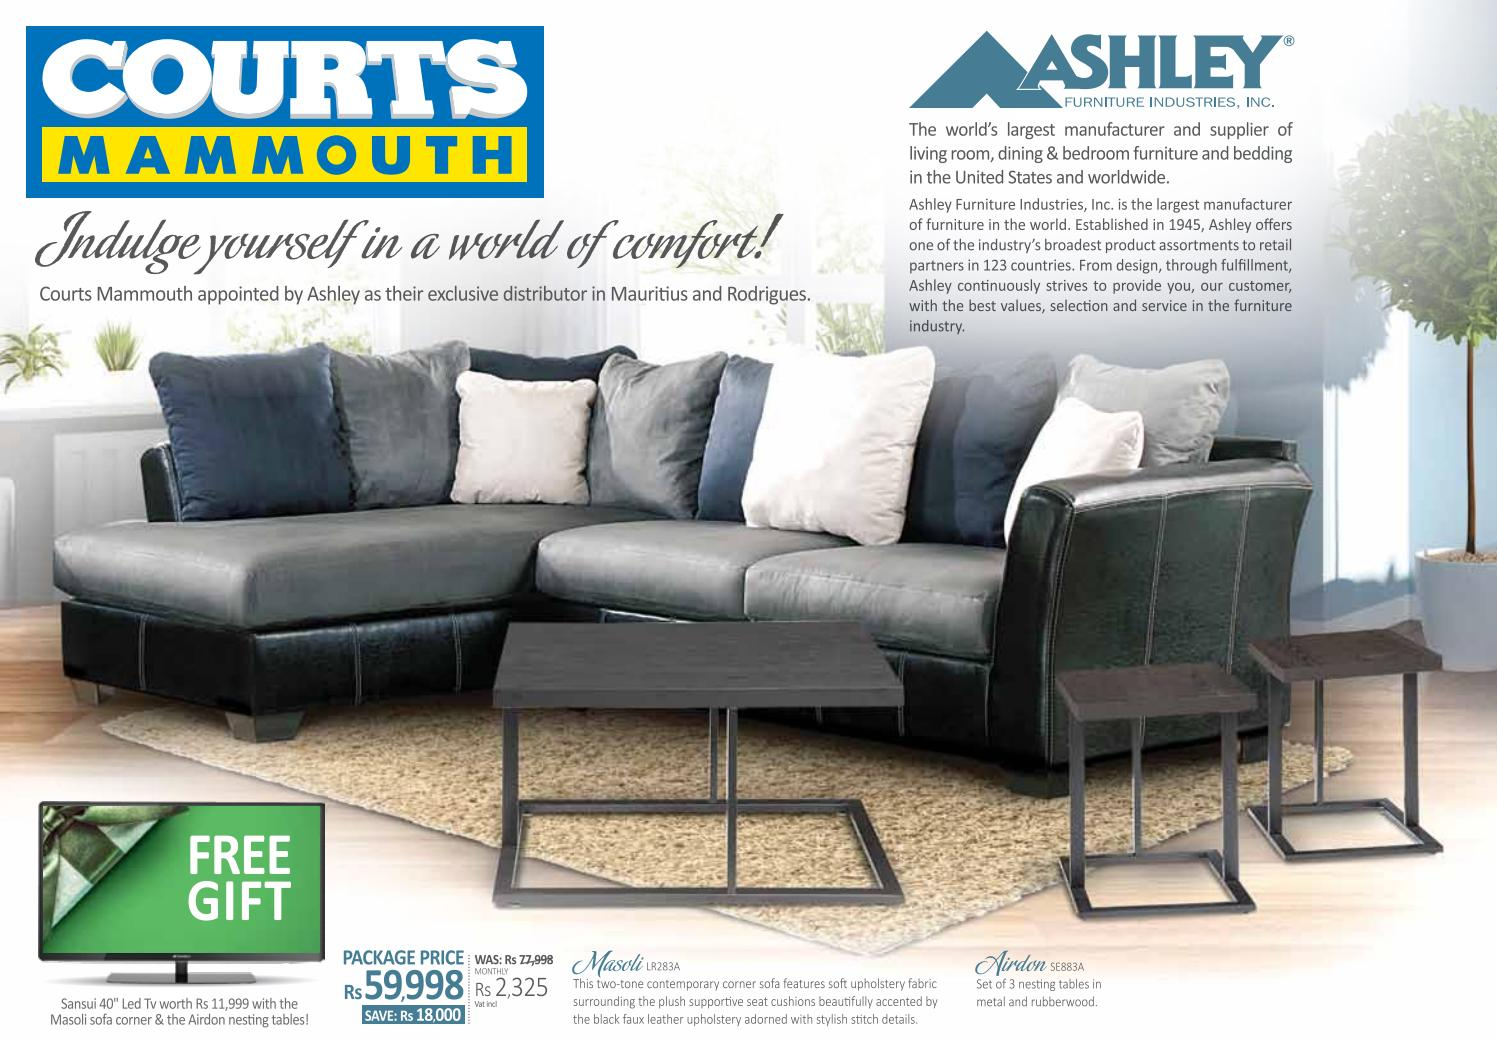 Courts Mammouth Mauritius Ashely Furniture New